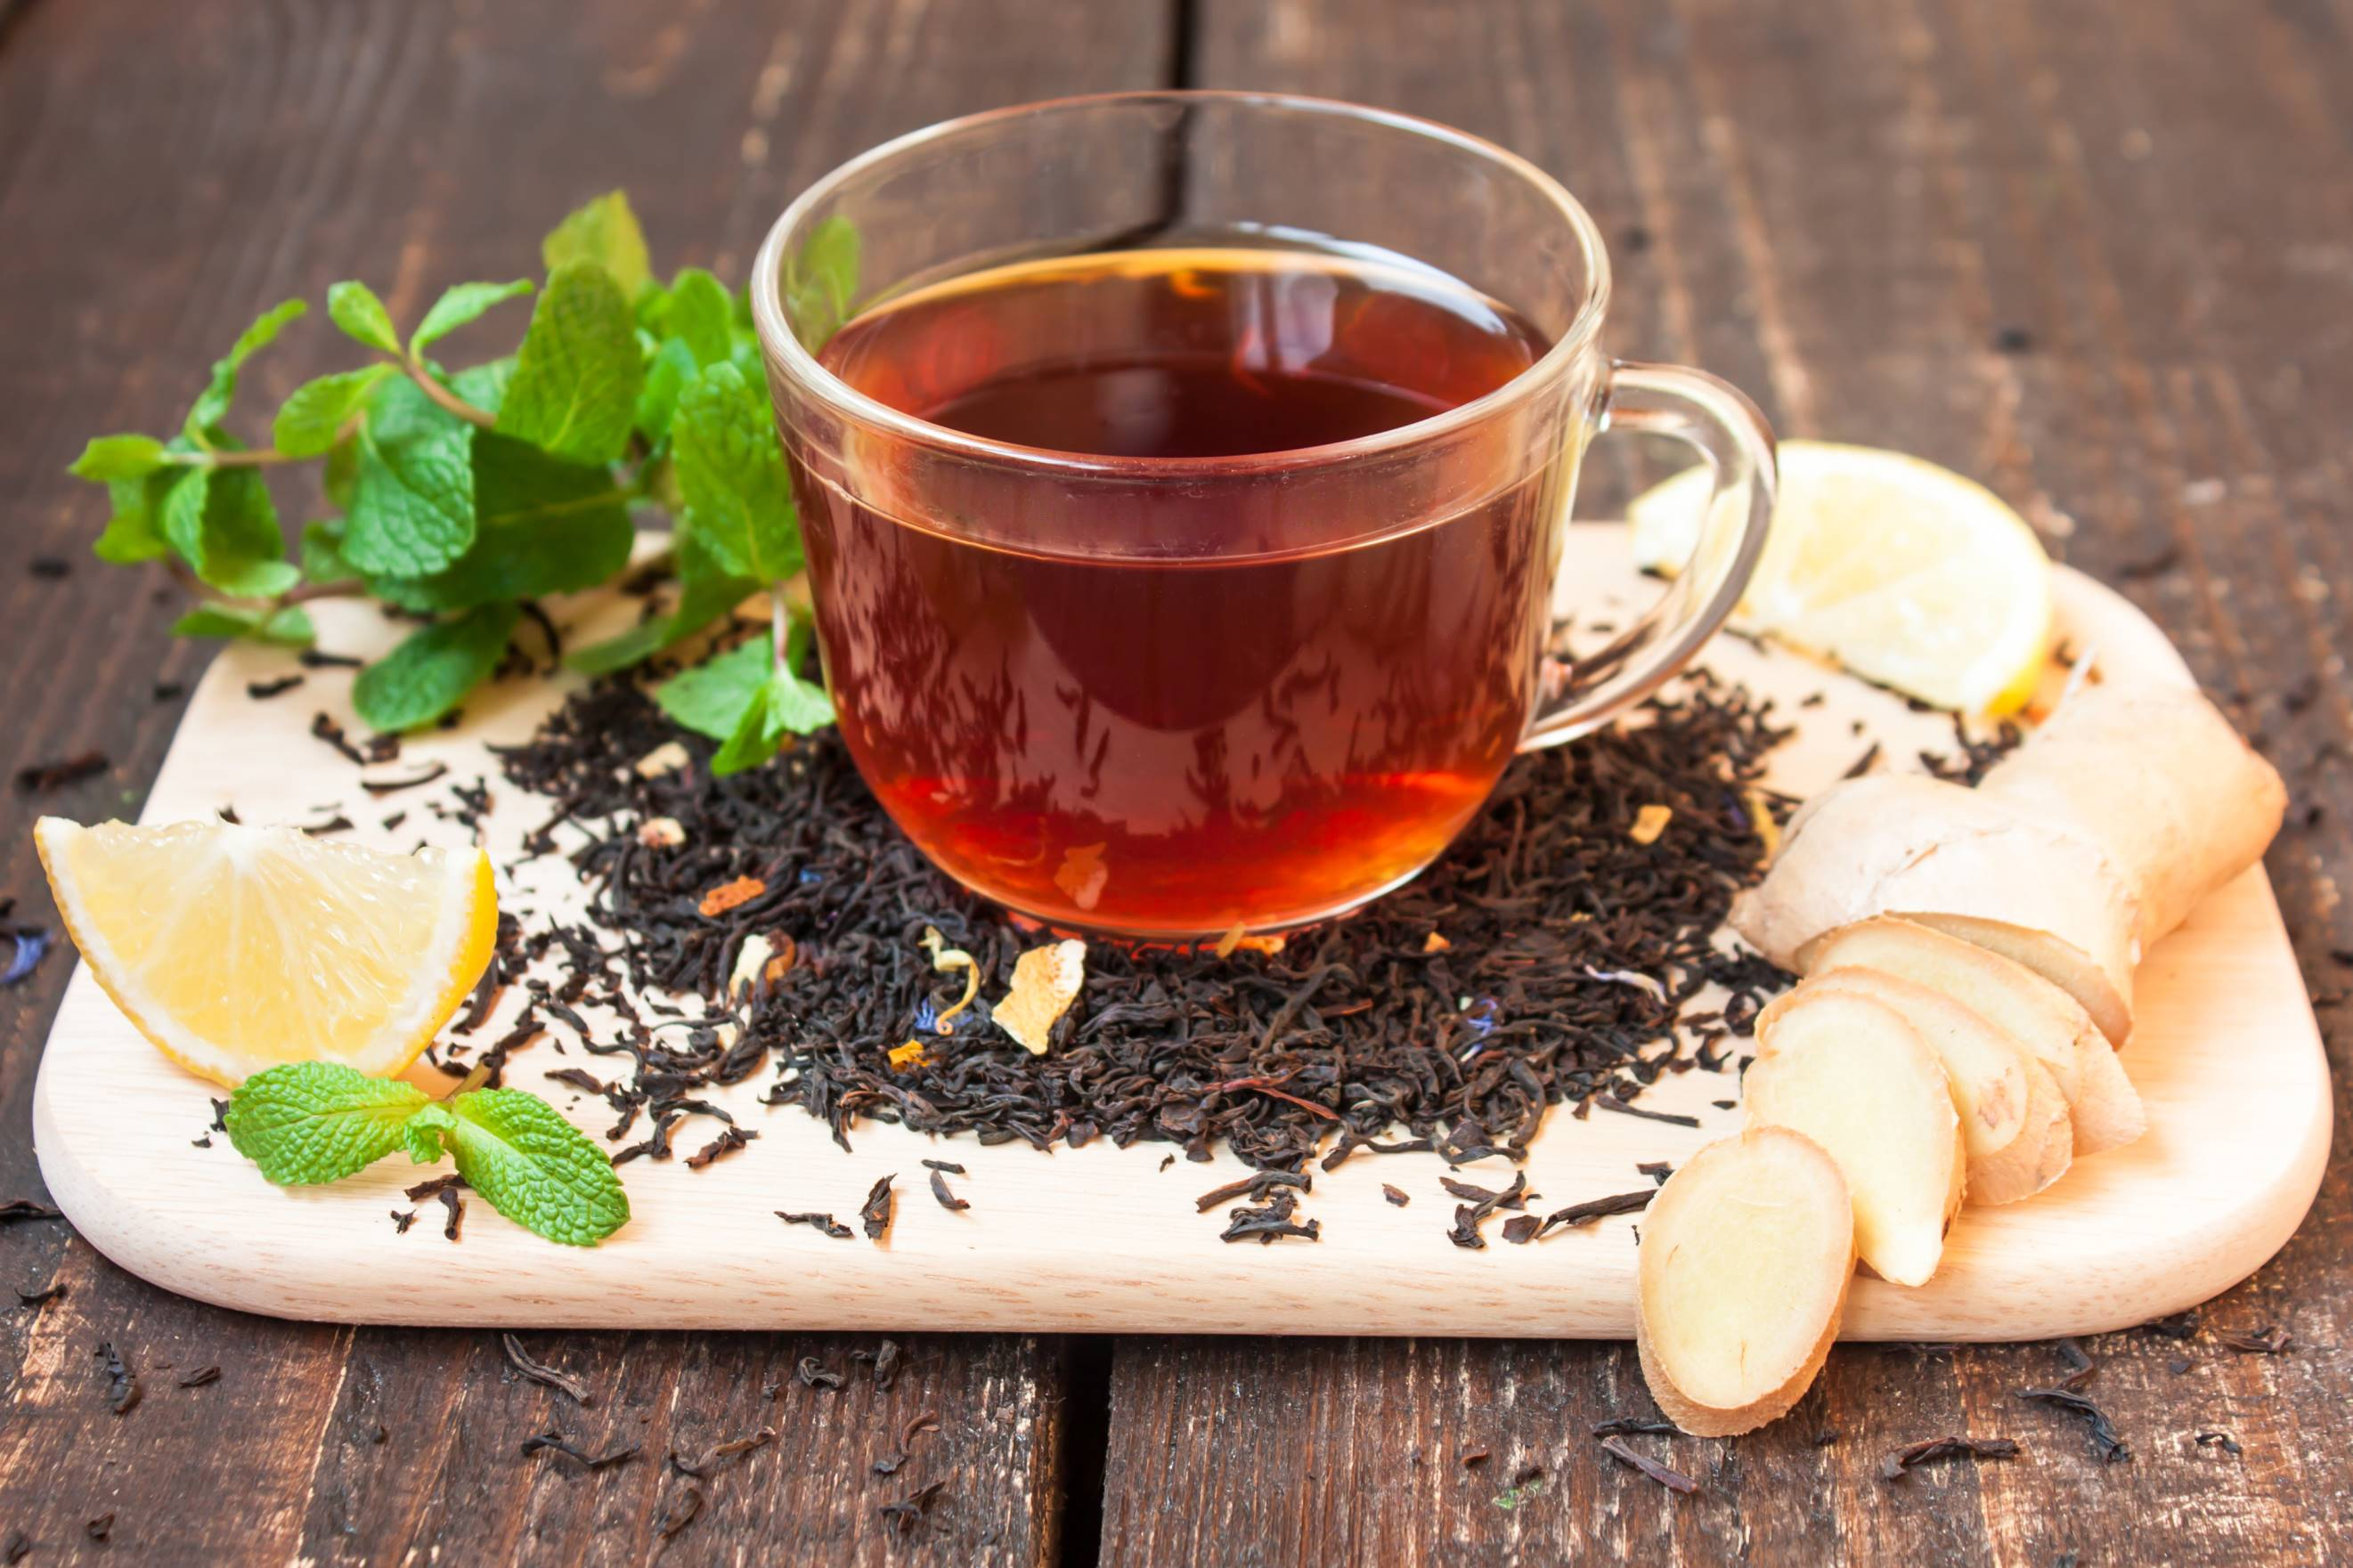 www.GetBg .net 2017Food Drinks A cup of black tea with ginger 113462